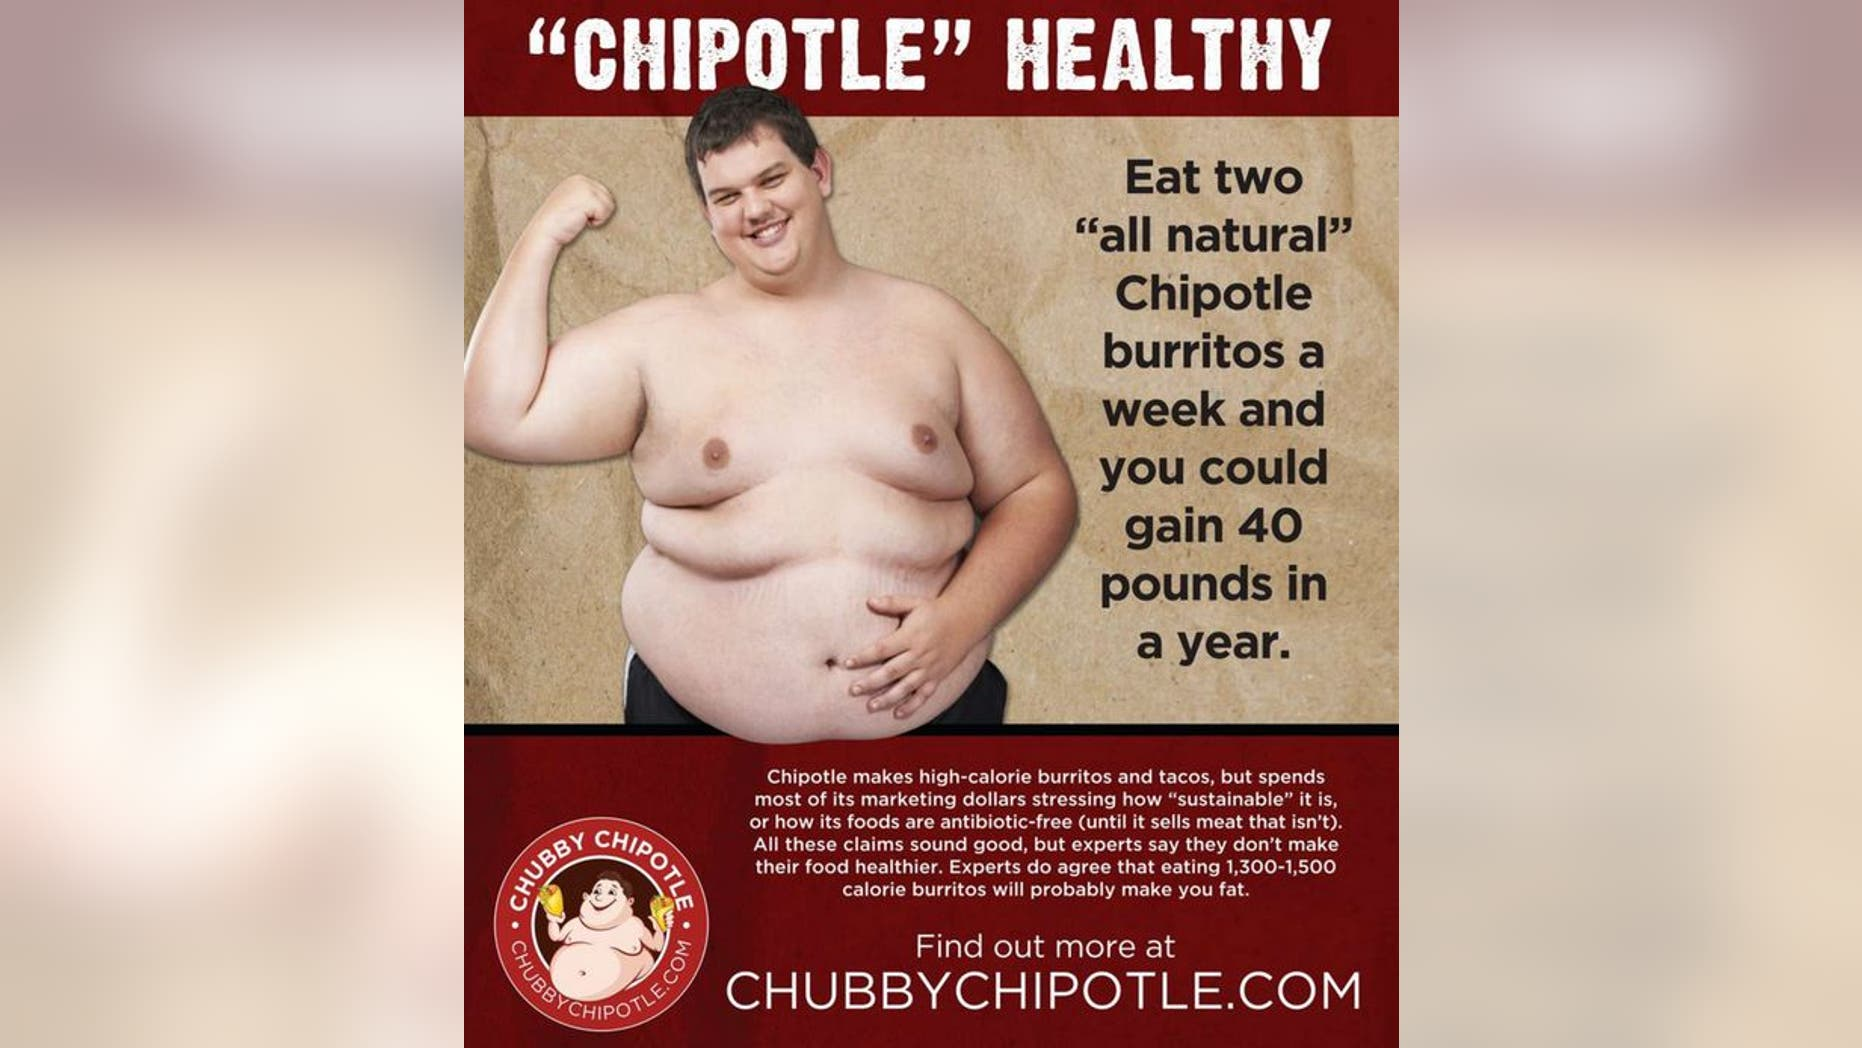 A new campaign is attacking Chipotle's carefully crafted healthy image.